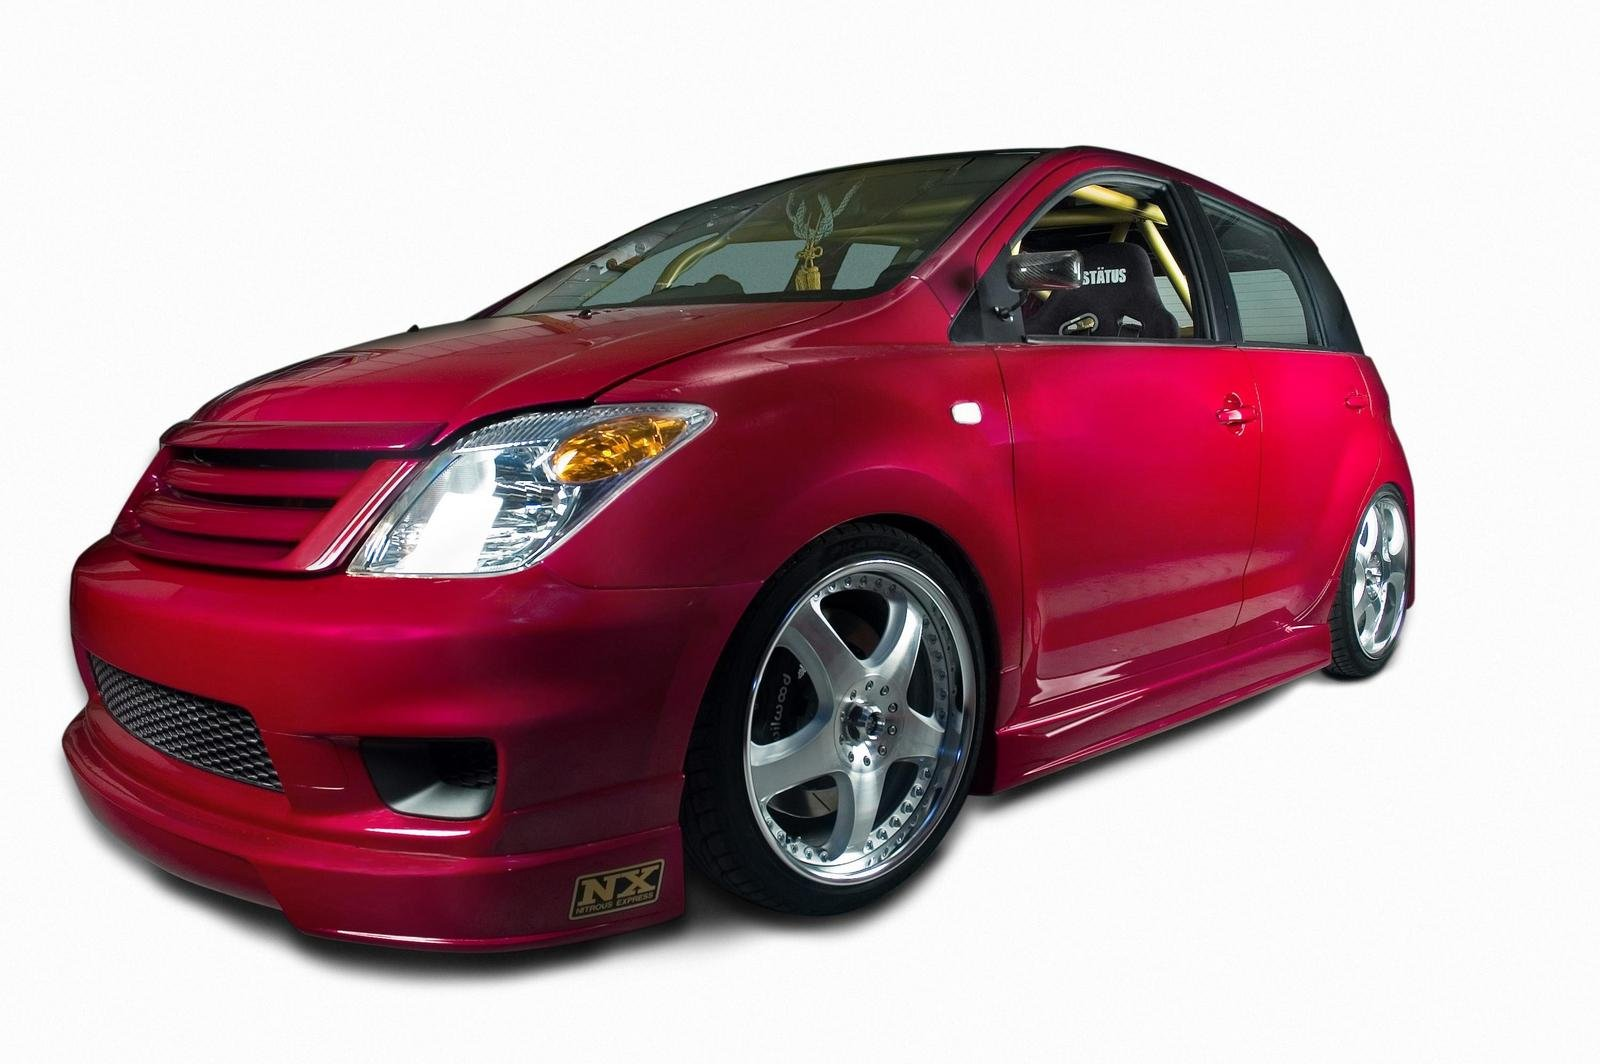 2012 scion xa submited images